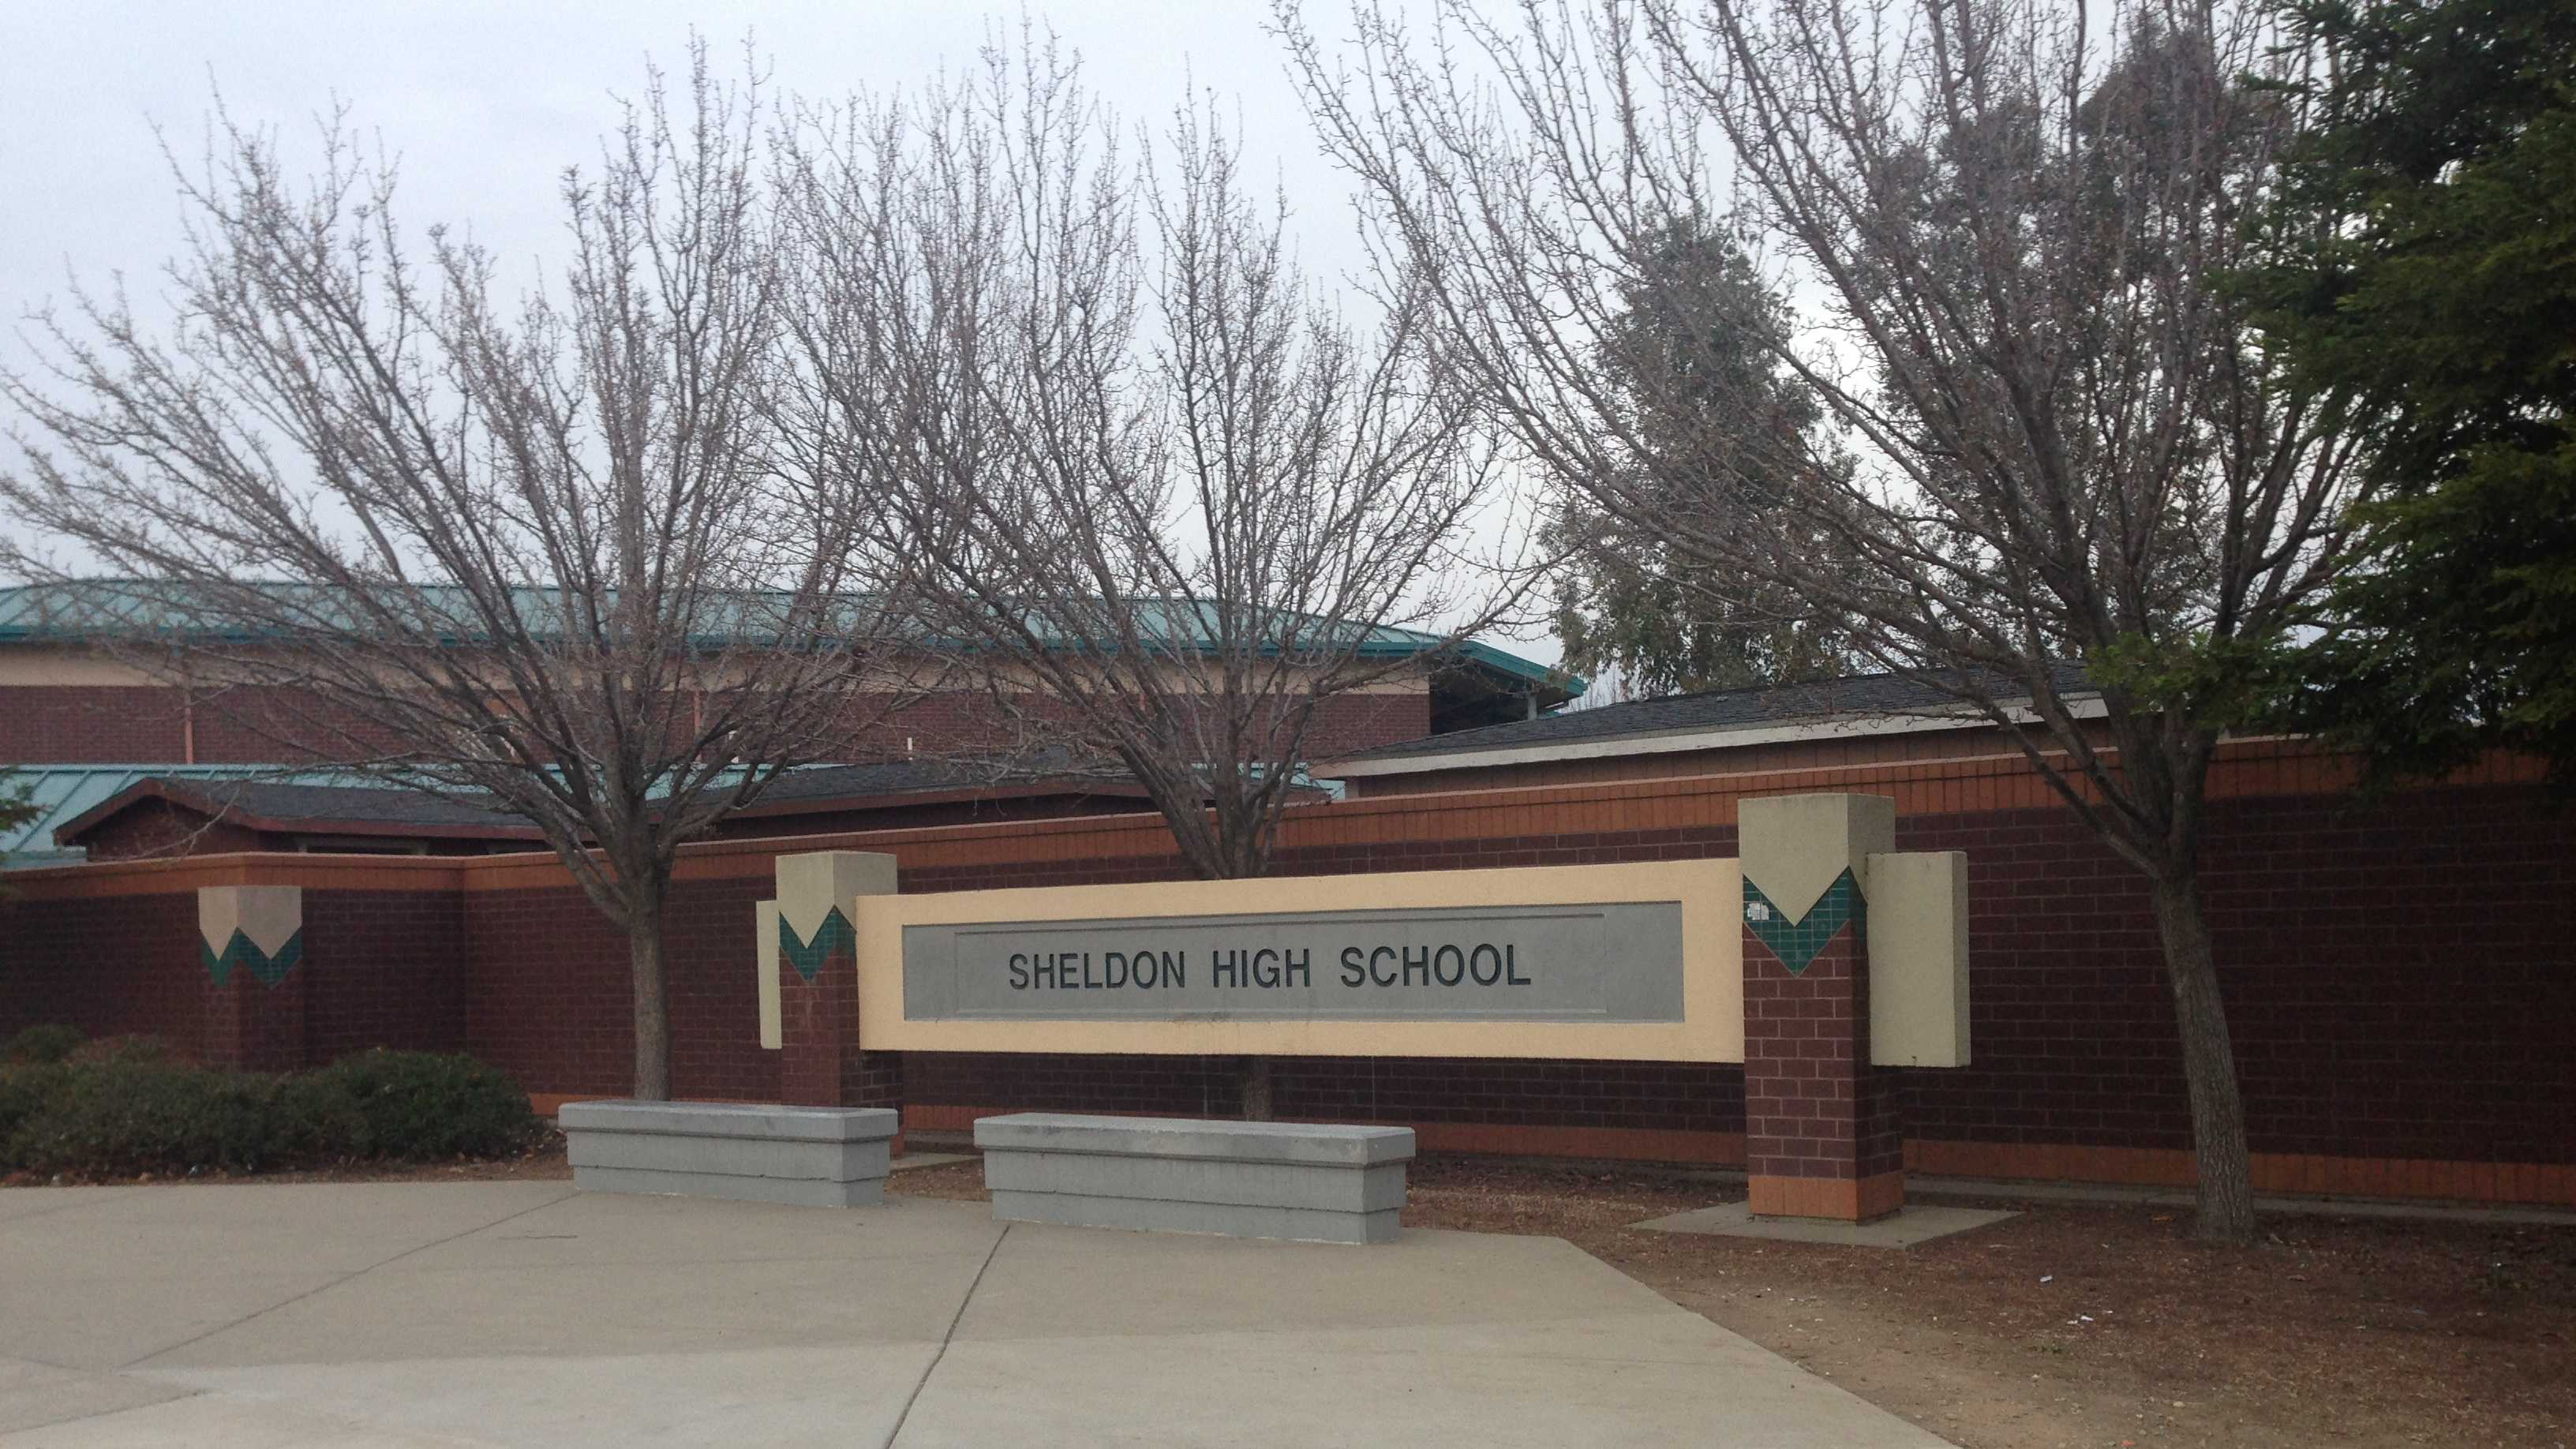 Sheldon High School